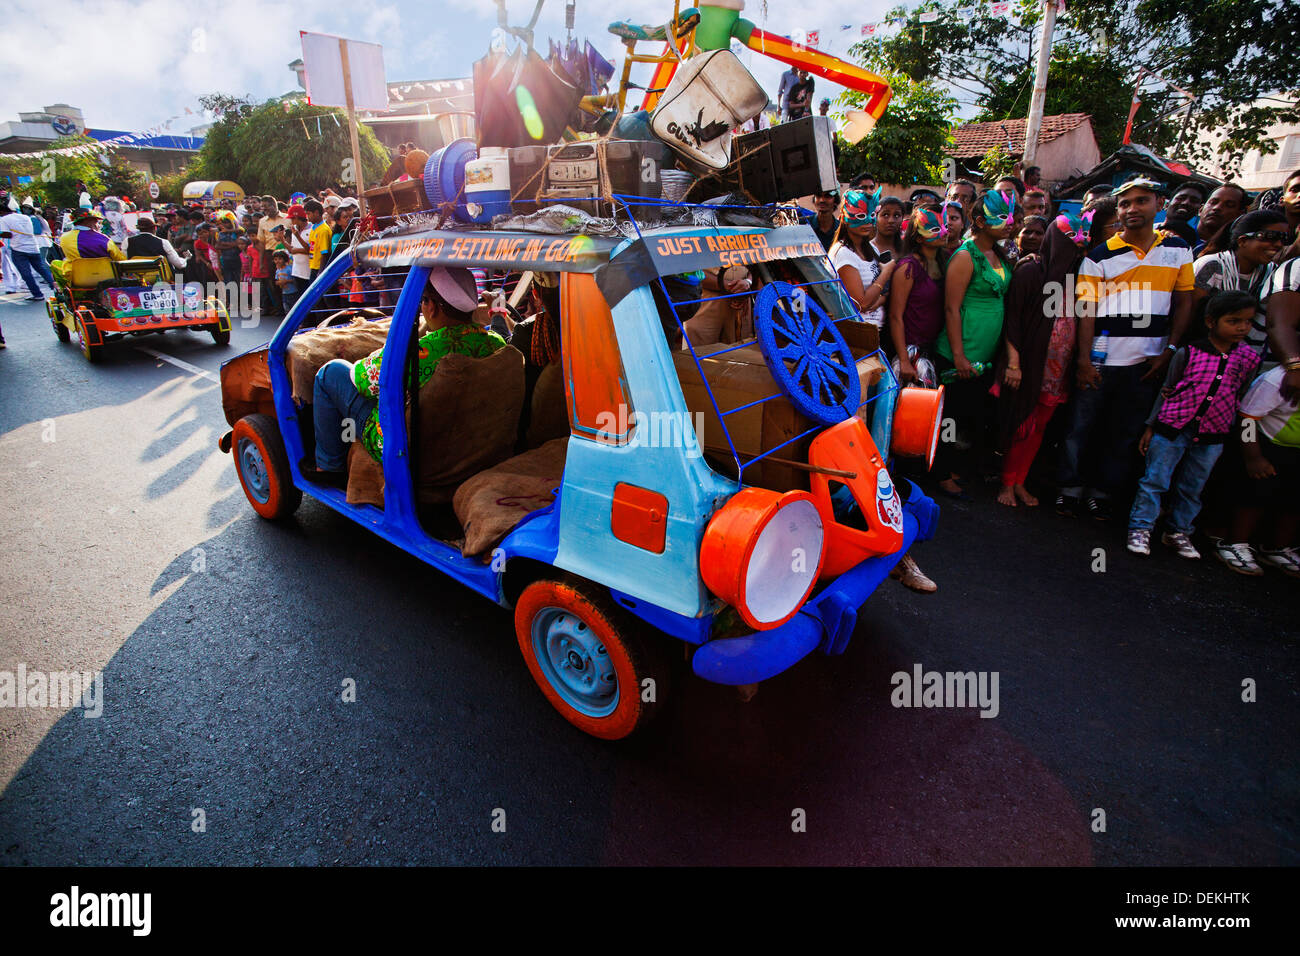 Vintage car at traditional procession in a carnival, Goa Carnivals, Goa, India - Stock Image